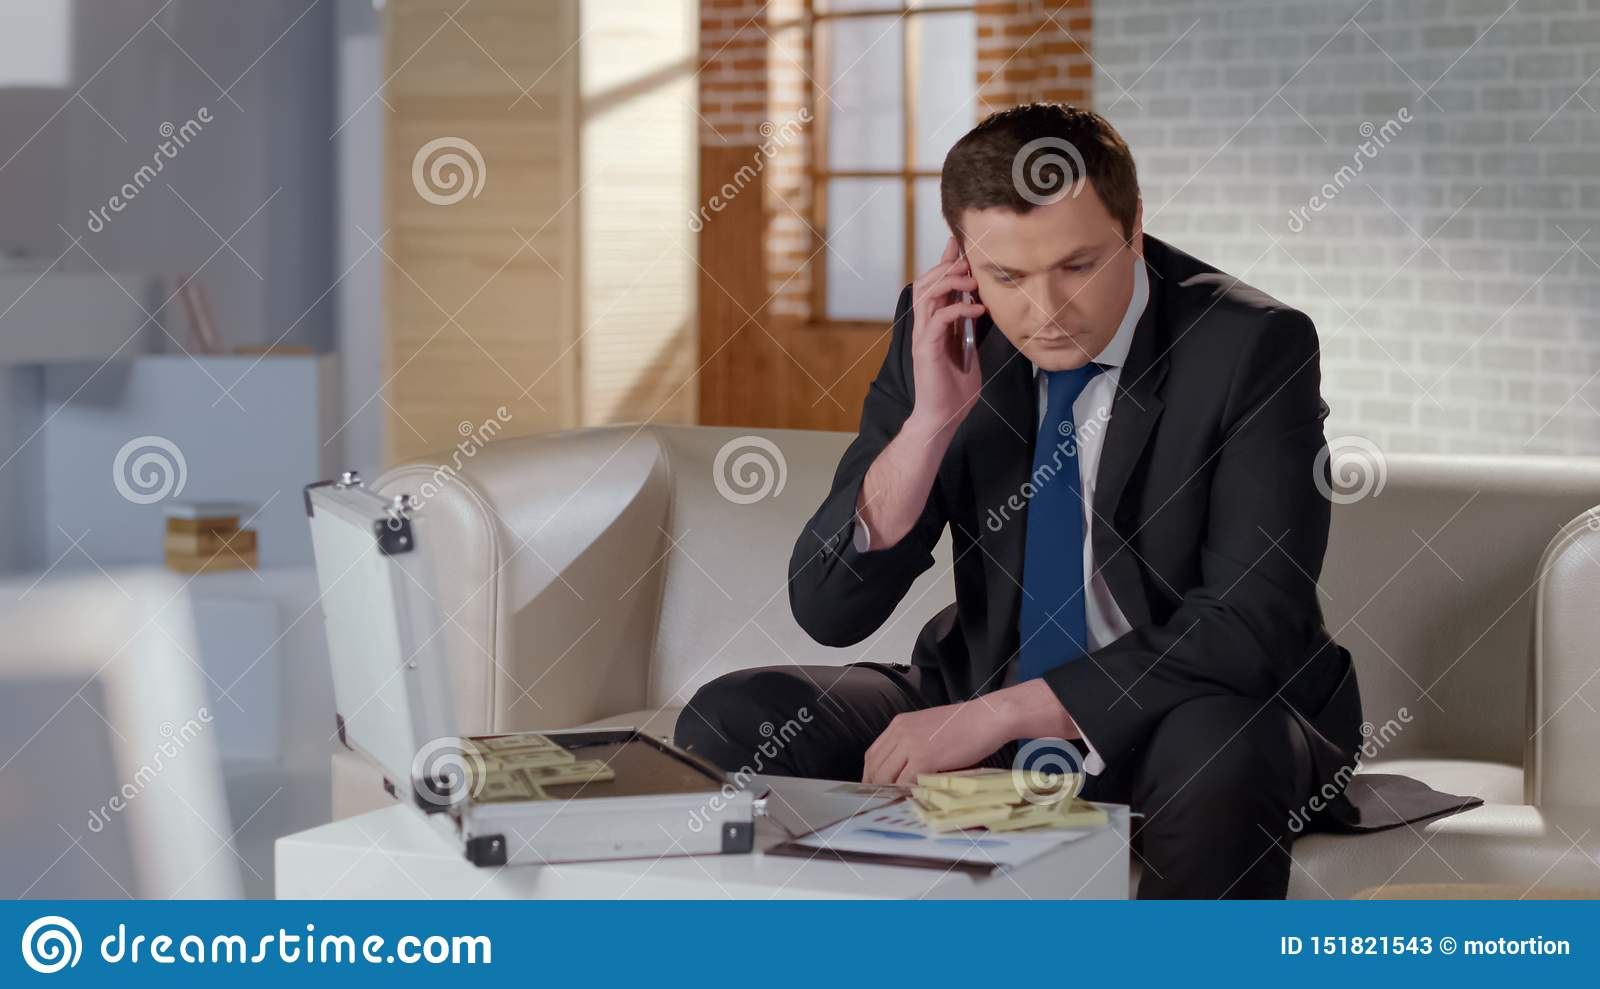 Rich man dealing with partner by phone, big money on table, profitable business